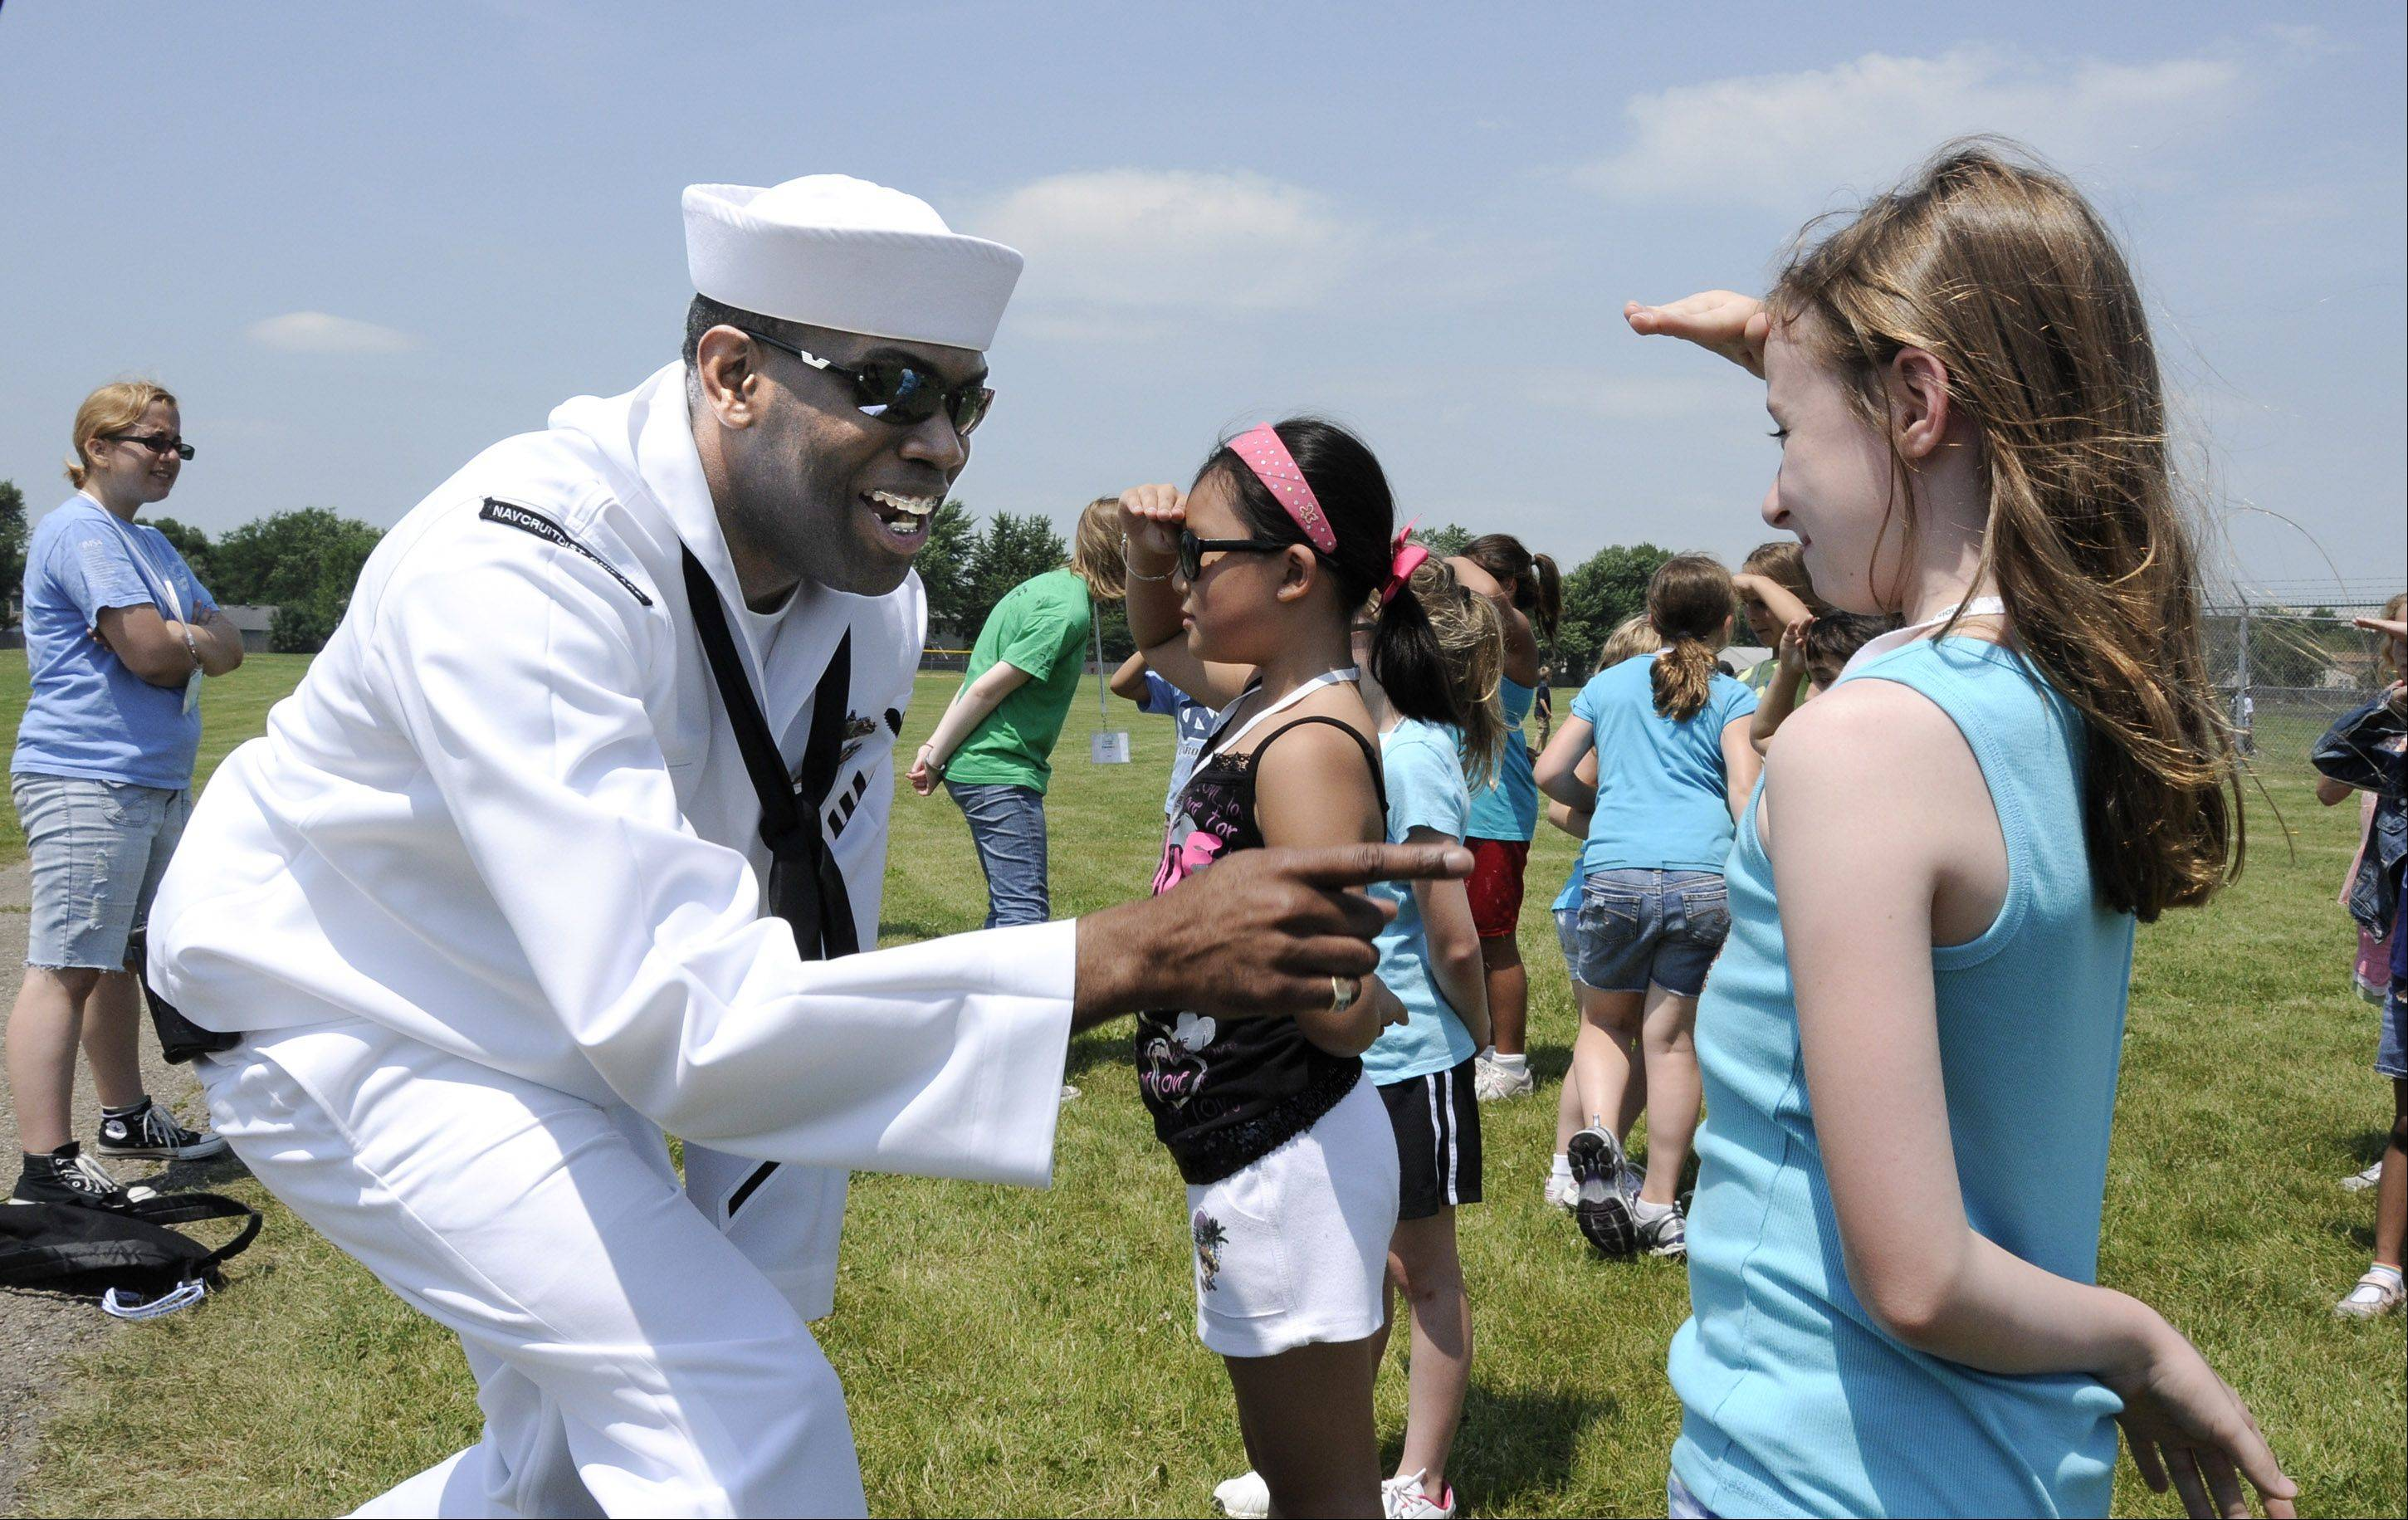 Recruiter Demetrius Lash tries to get Paige Breslin to laugh while she stands for inspection. Personnel from the Navy visited the summer camp Thursday at the Illinois Mathematics and Science Academy in Aurora to talk about the Navy and have fun with the kids.